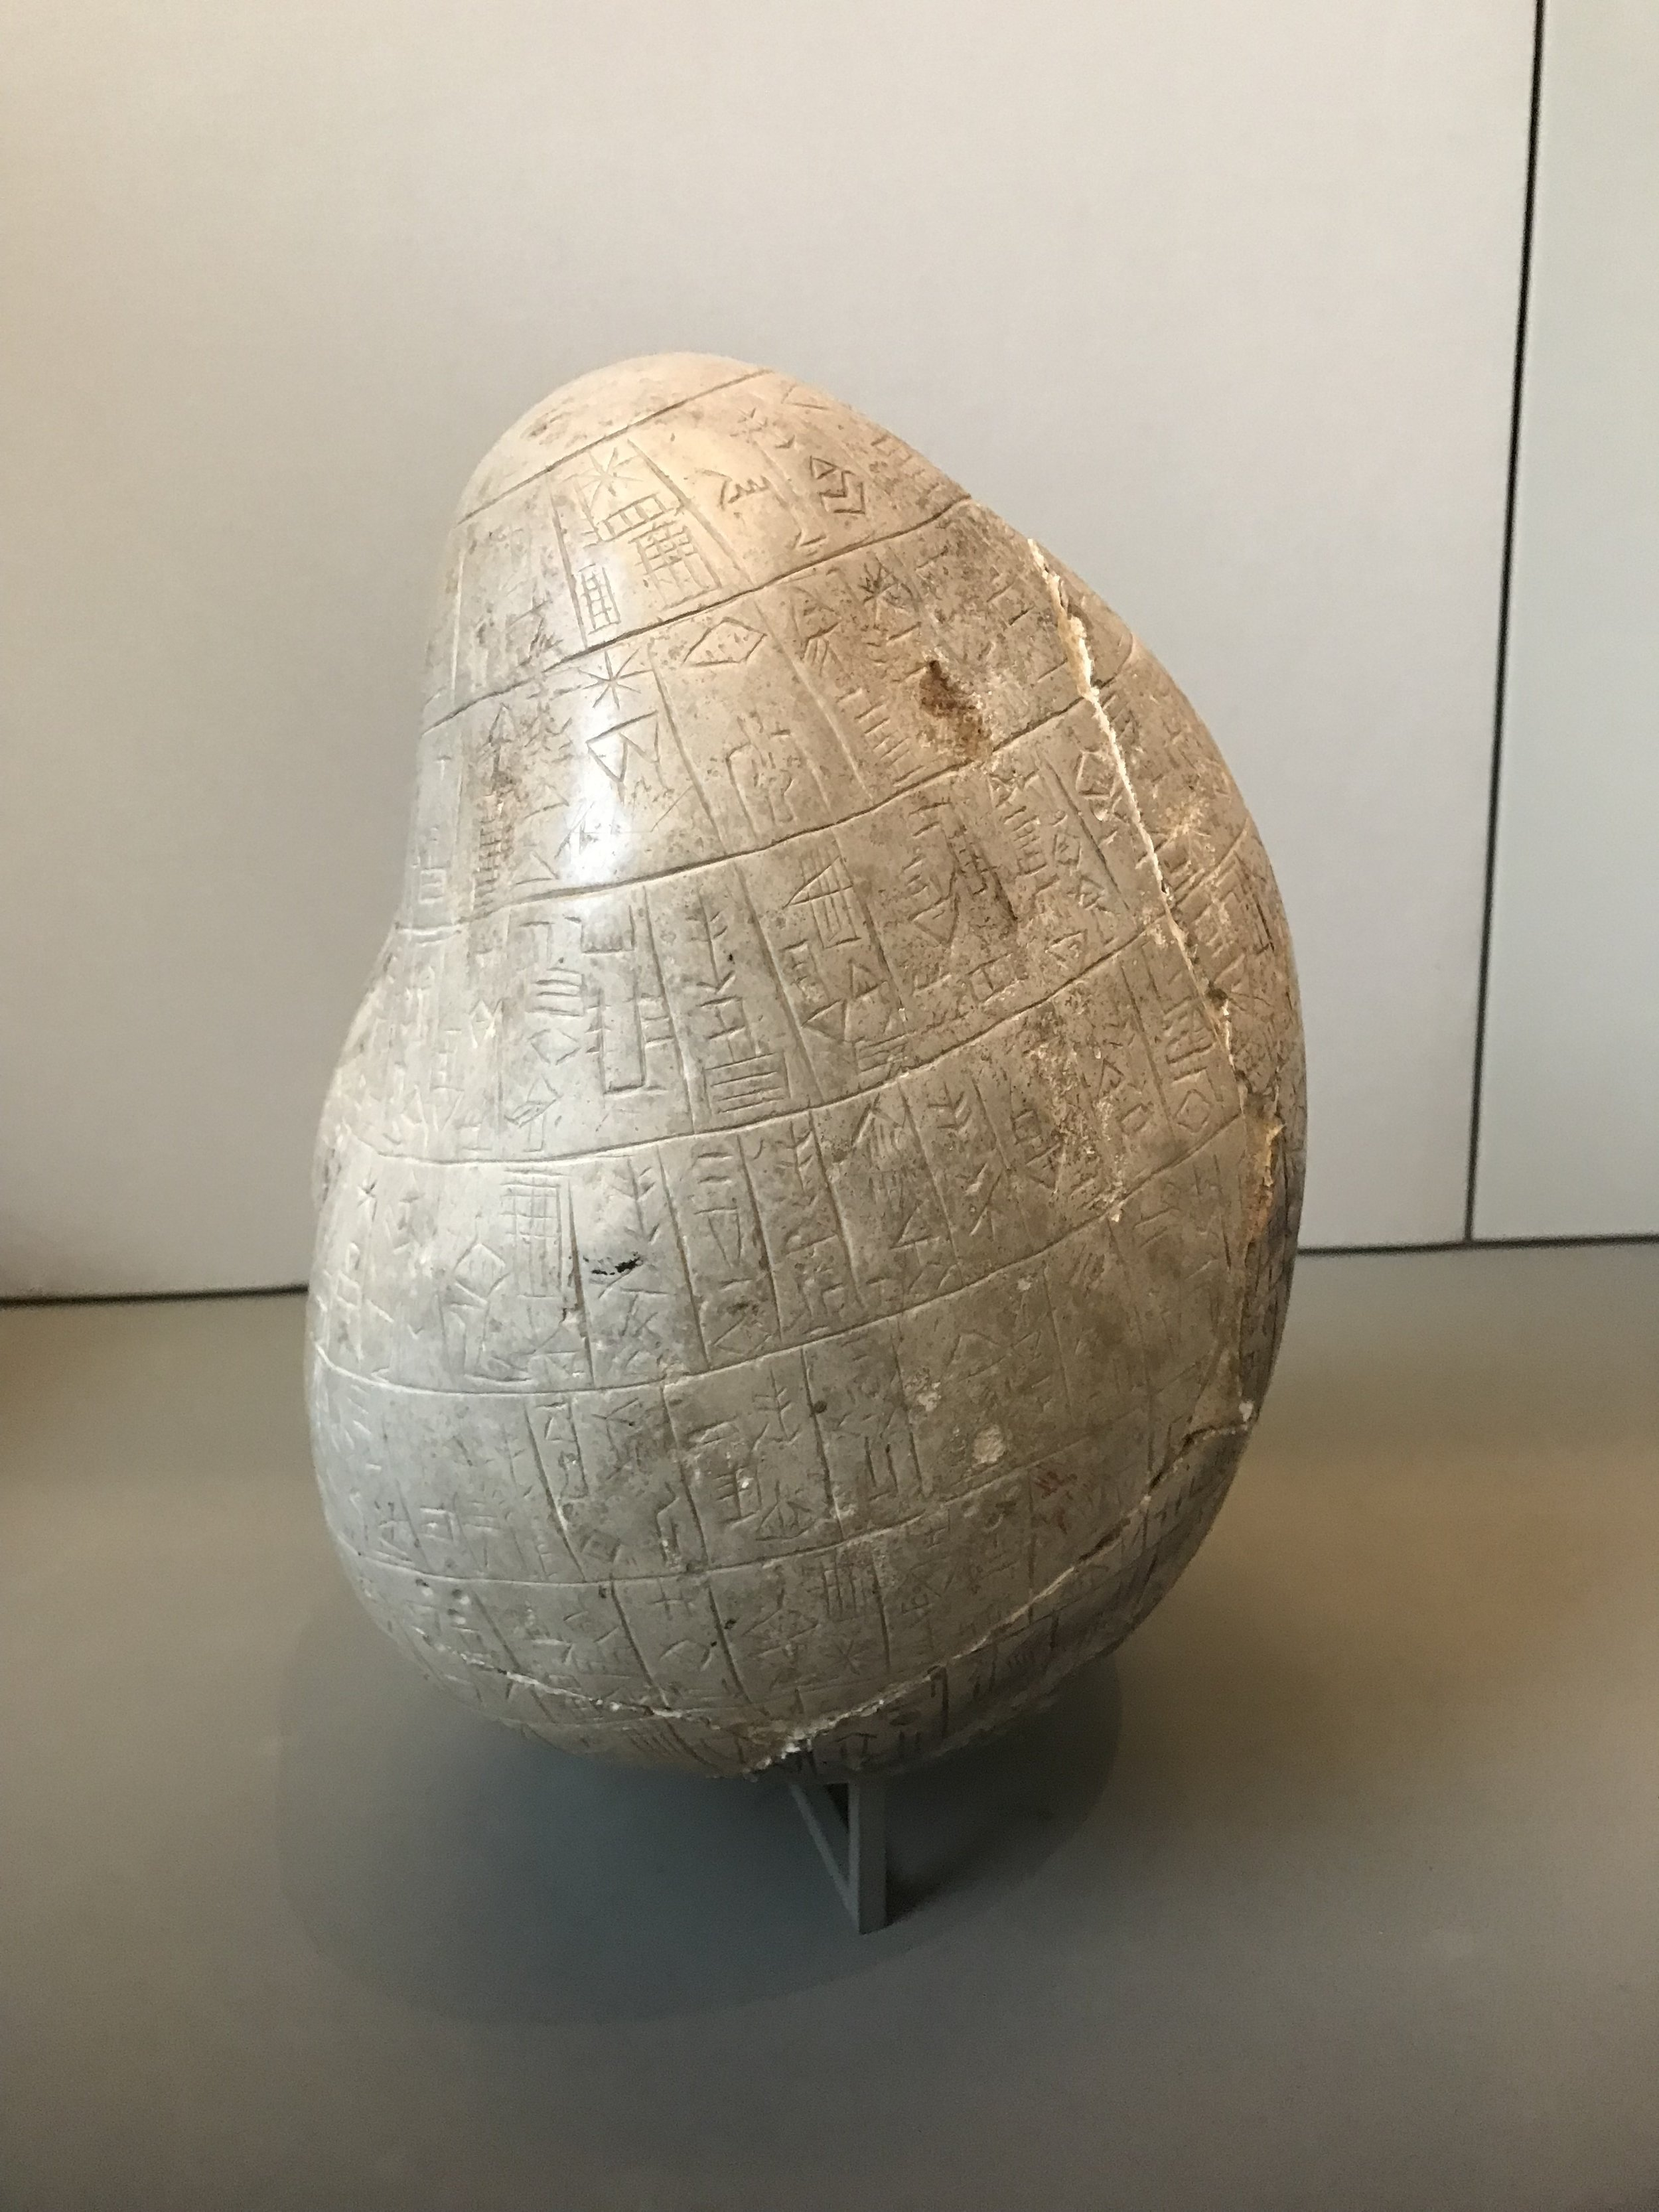 An artefact observed to contain much cuneiform written text in addition to logograms, which illustrates what such a minilithic artefact may look like. (image credit: K. F. Long, located at the Louvre, Paris)